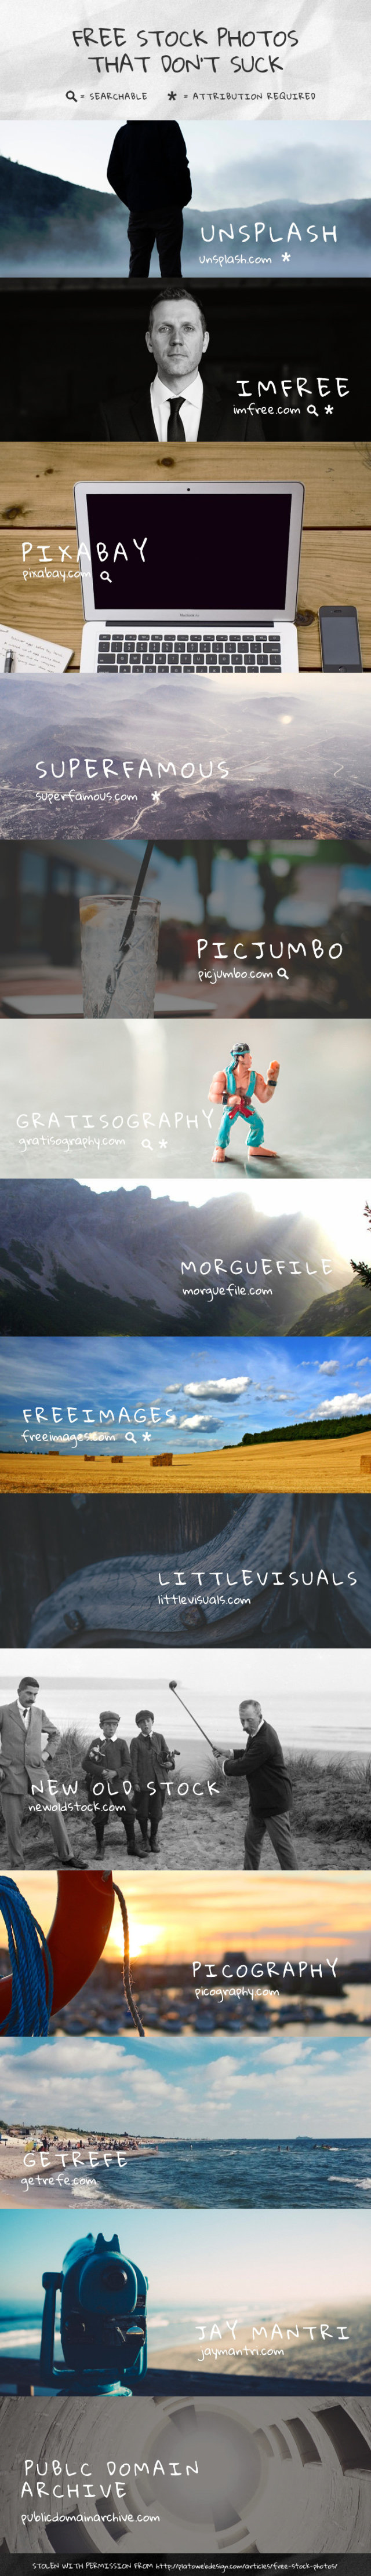 Fourteen Websites You Can Find FREE Stock Photos That Dont Suck #Infographic